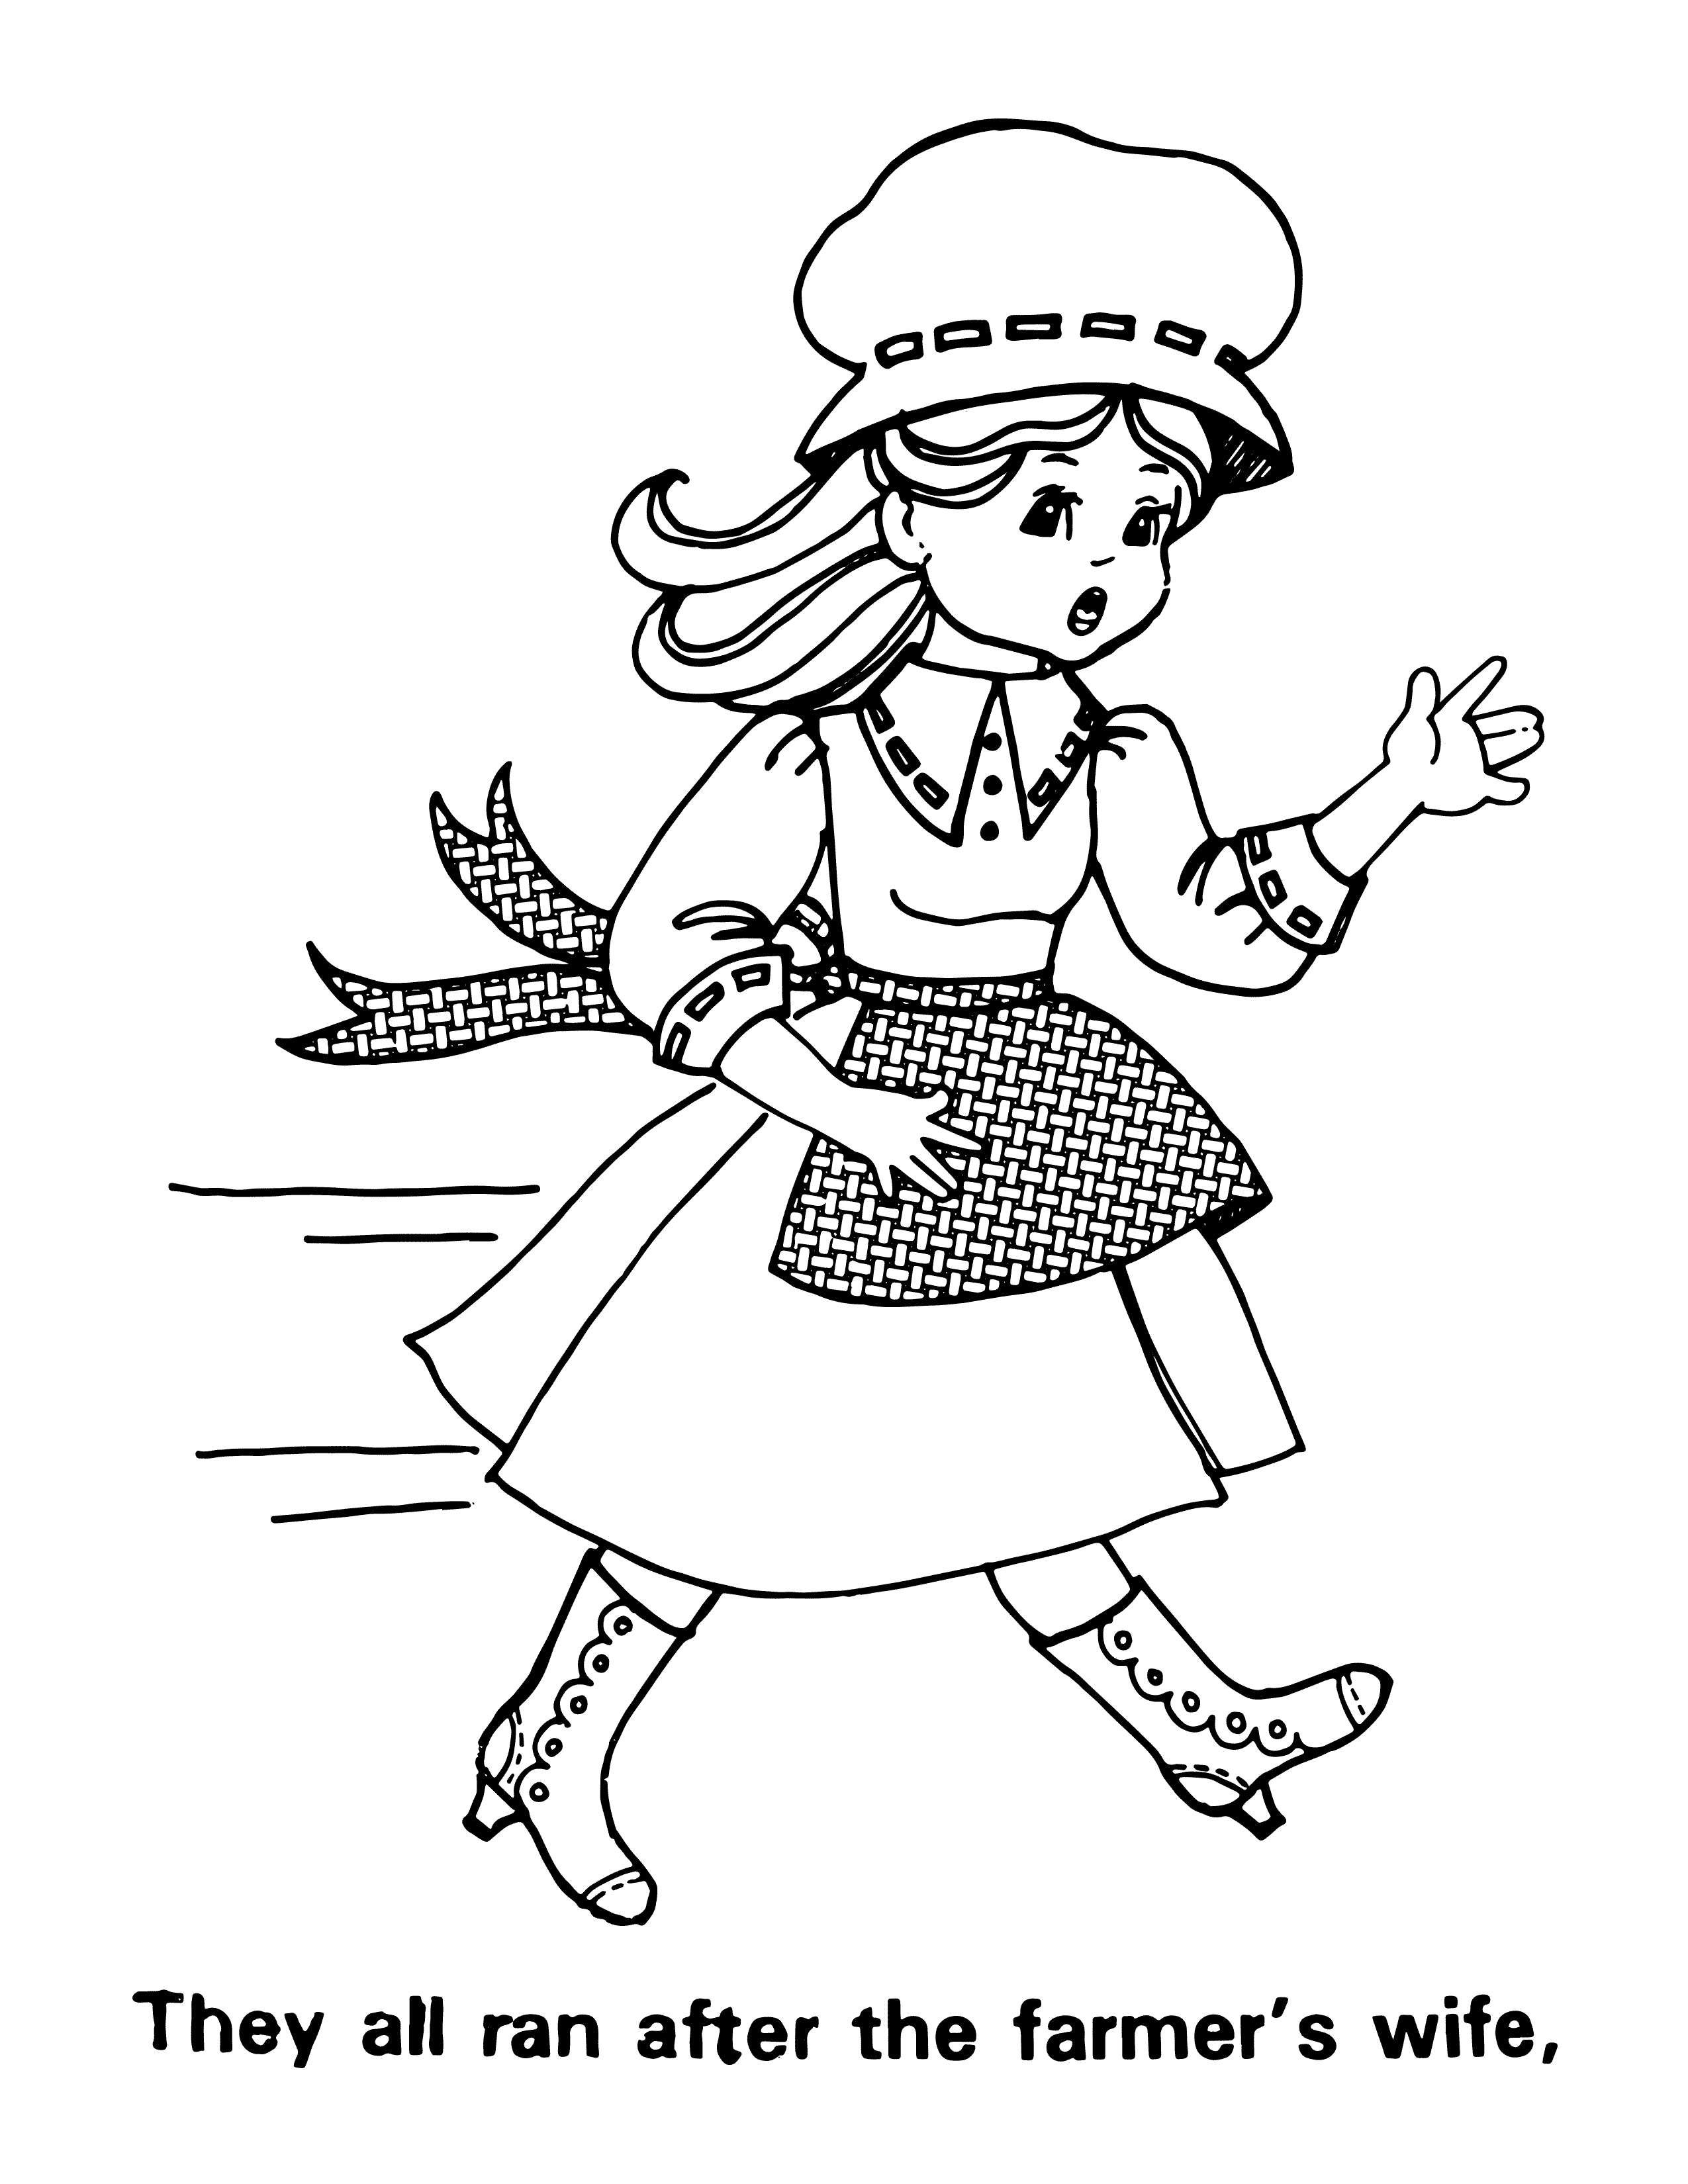 Free Coloring Page Of Kids Dancing - Coloring Home | 3300x2550